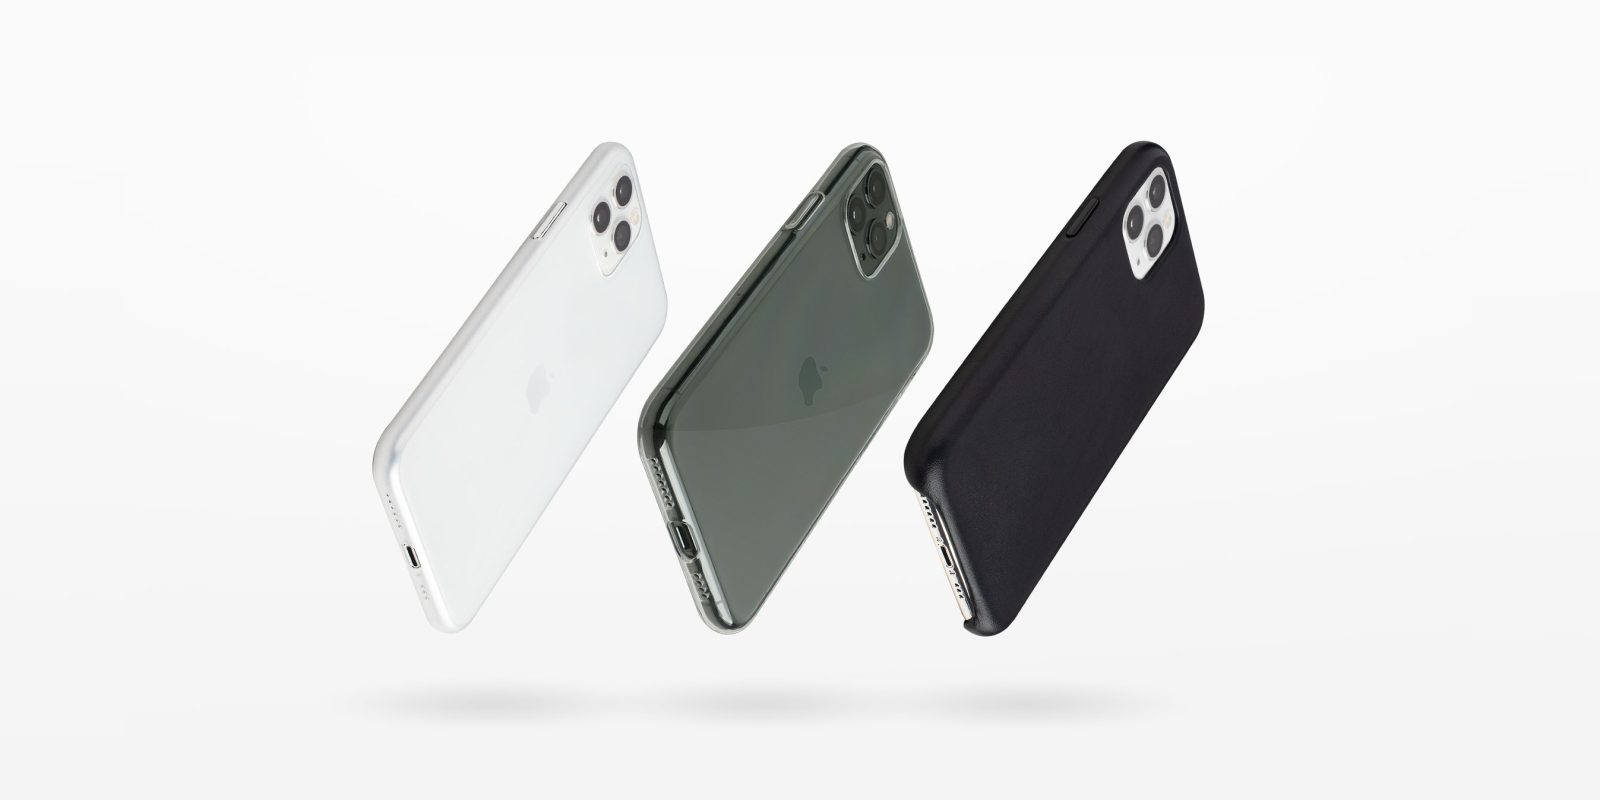 Get totallee's super thin iPhone cases, screen protectors, and wireless chargers 30% off